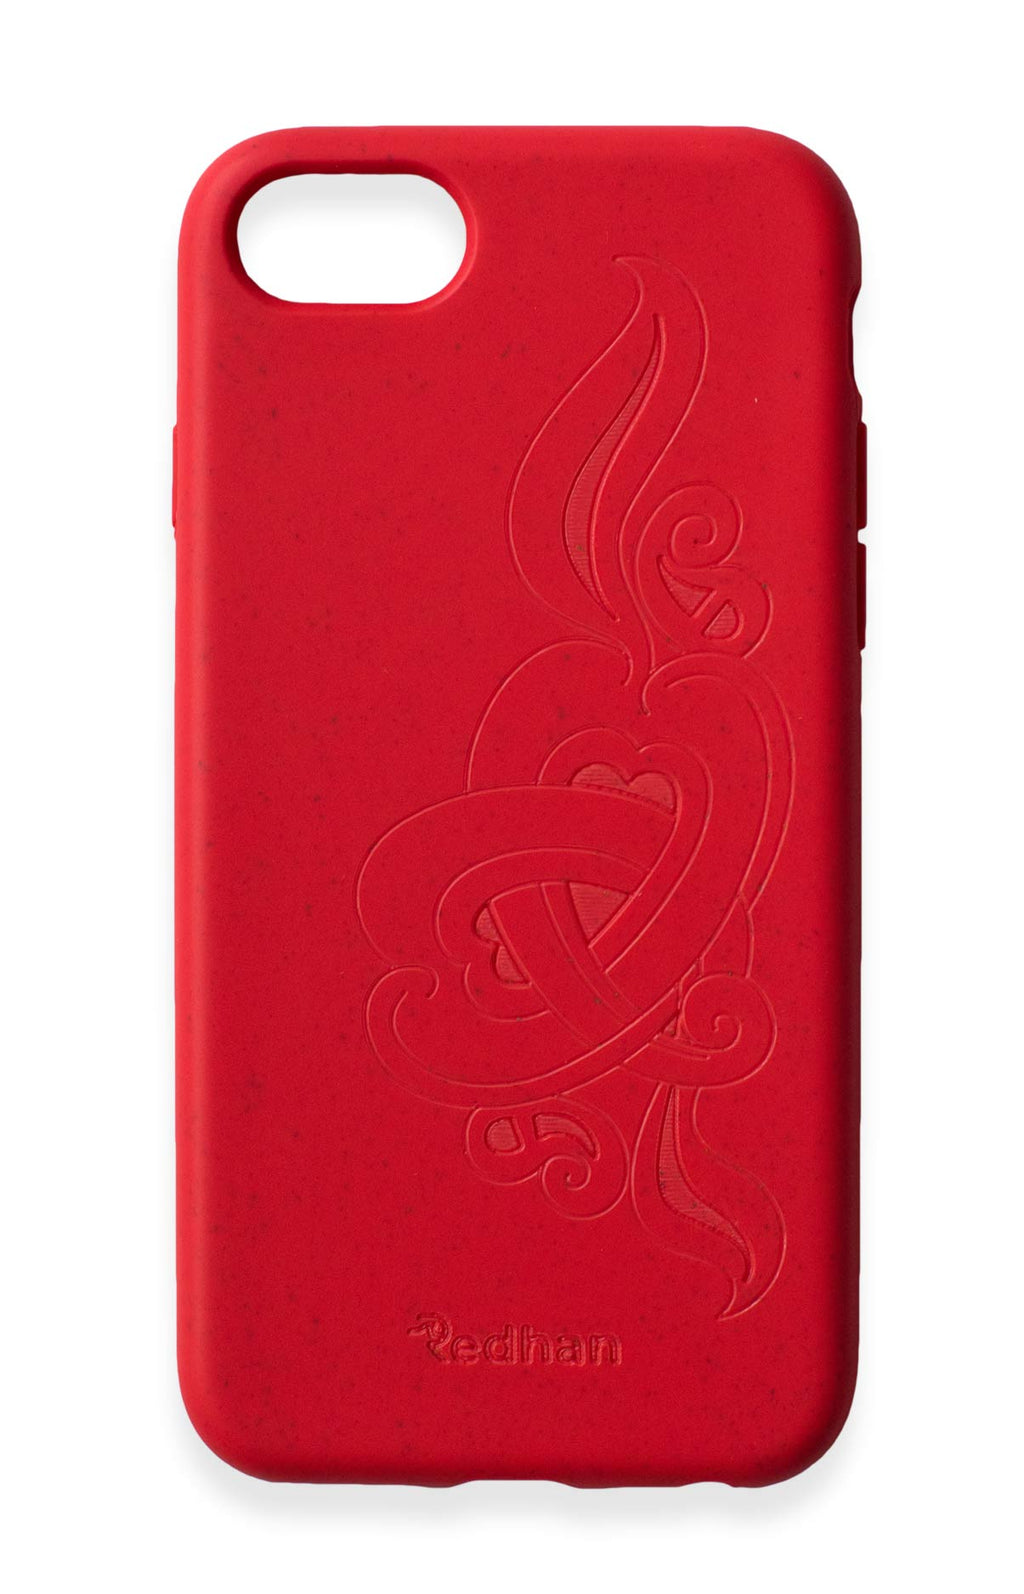 'Hirigaa' or Stone Art in Ruby Red - iPhone 6/6S/7/8/SE (2nd Gen)